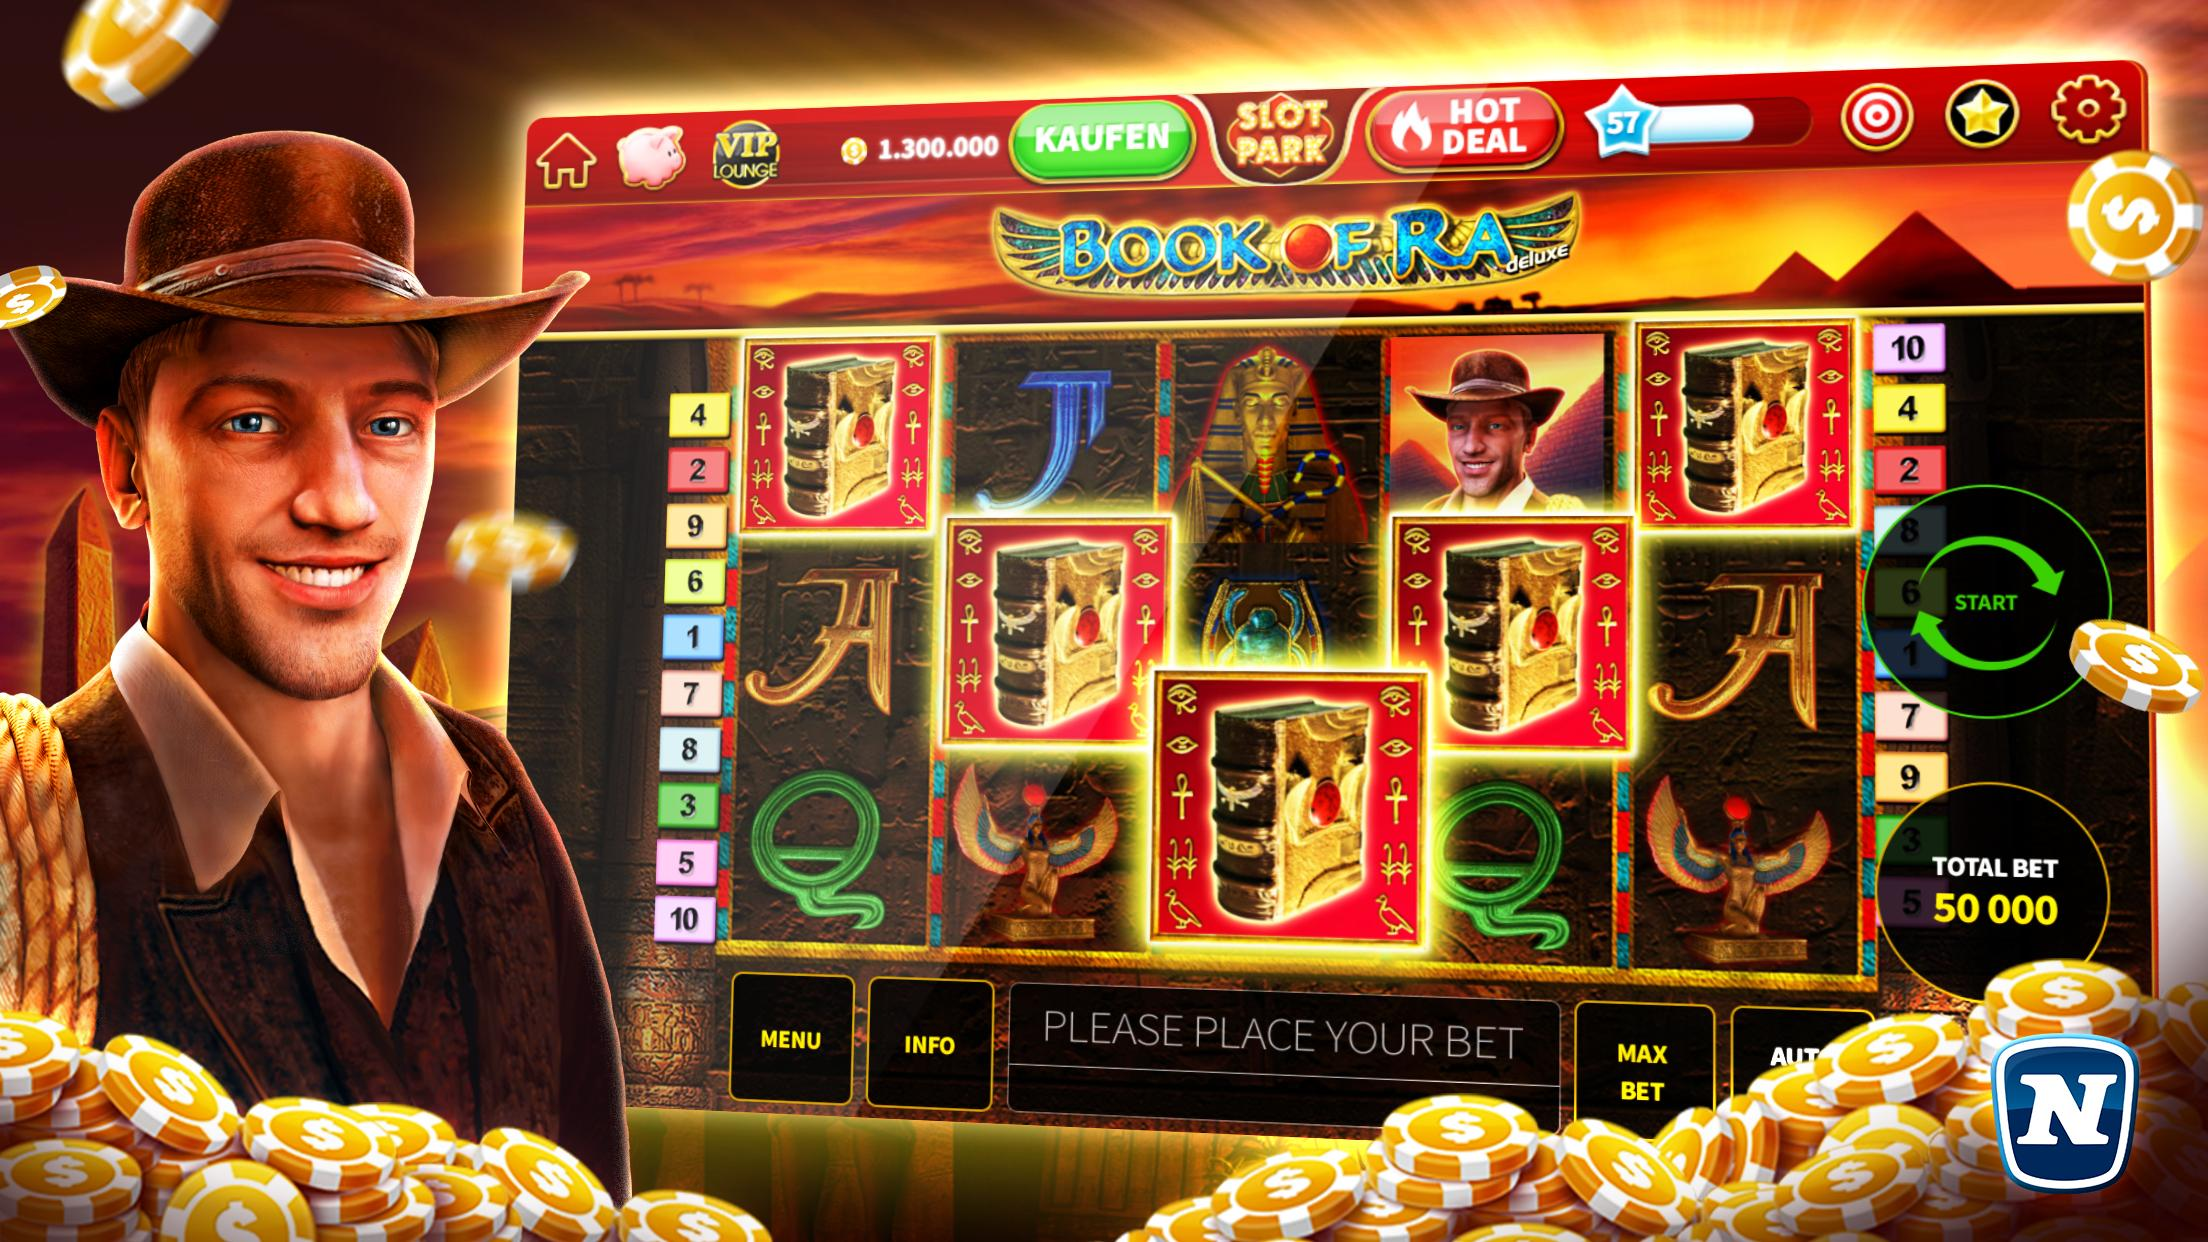 Slotpark Online Casino Games & Free Slot Machine 3.21.1 Screenshot 1